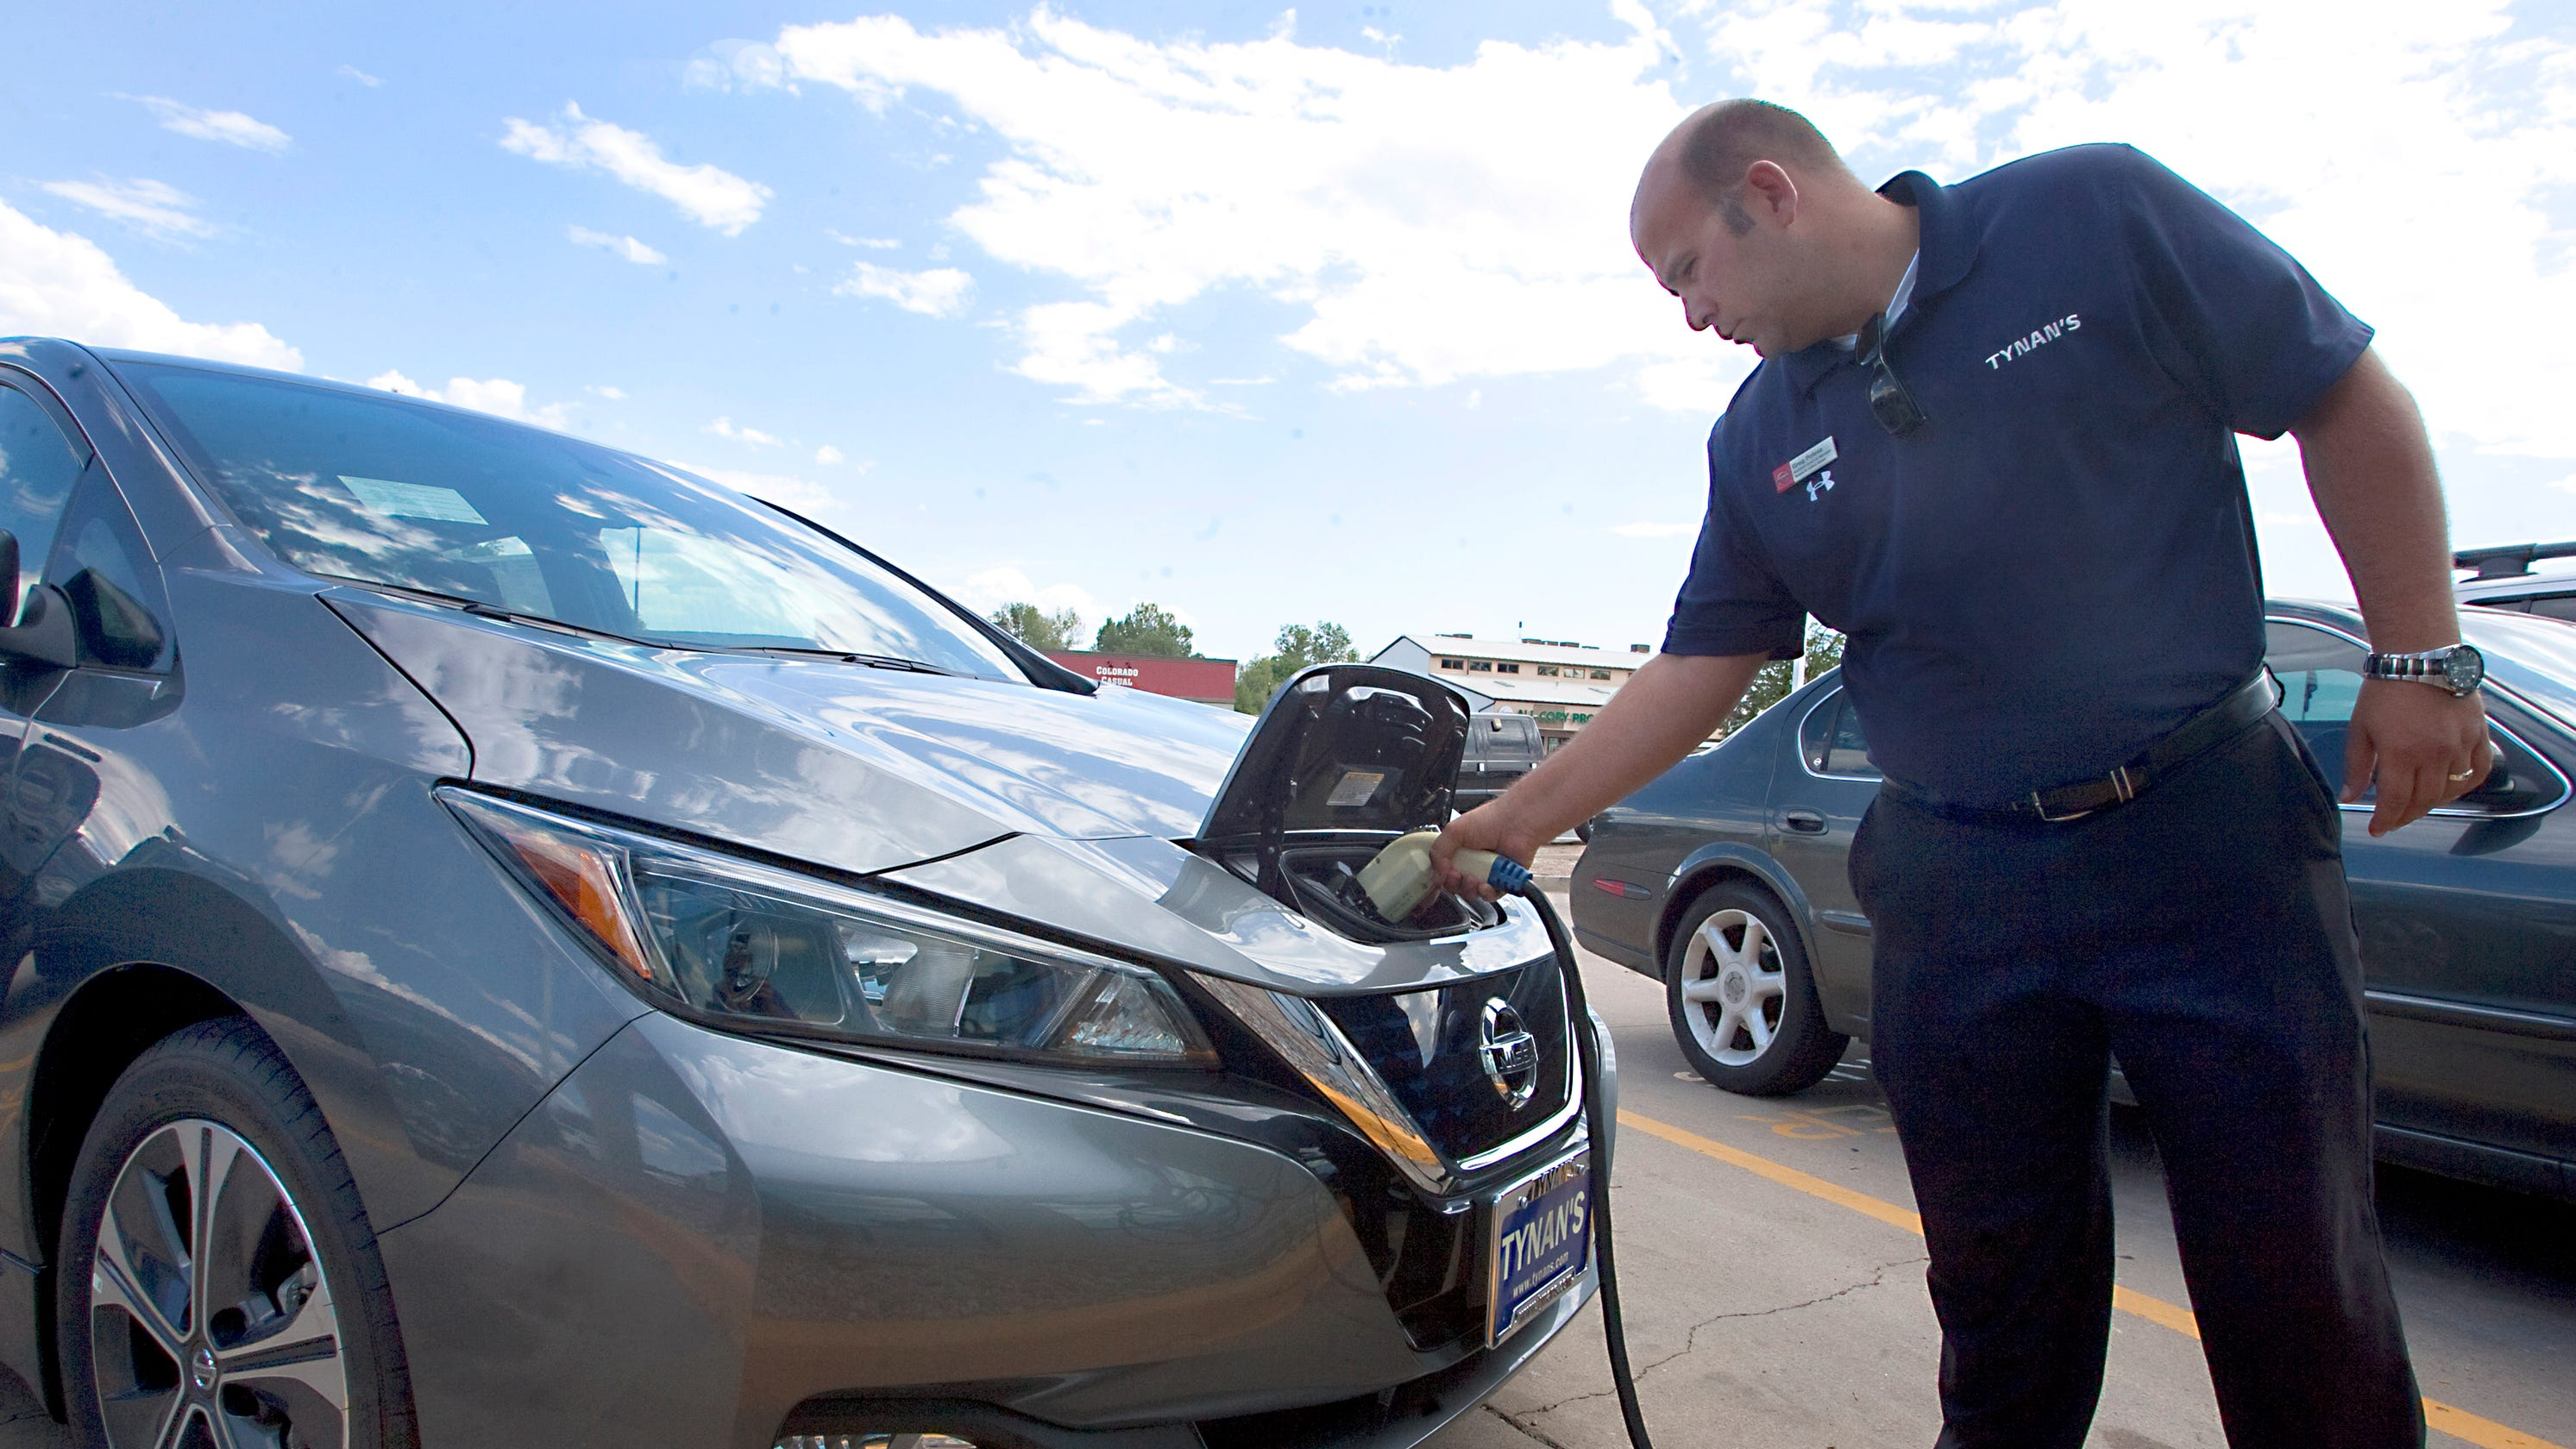 Tynan'S Nissan Fort Collins >> Fort Collins Wants You To Buy Electric Cars To Help Climate